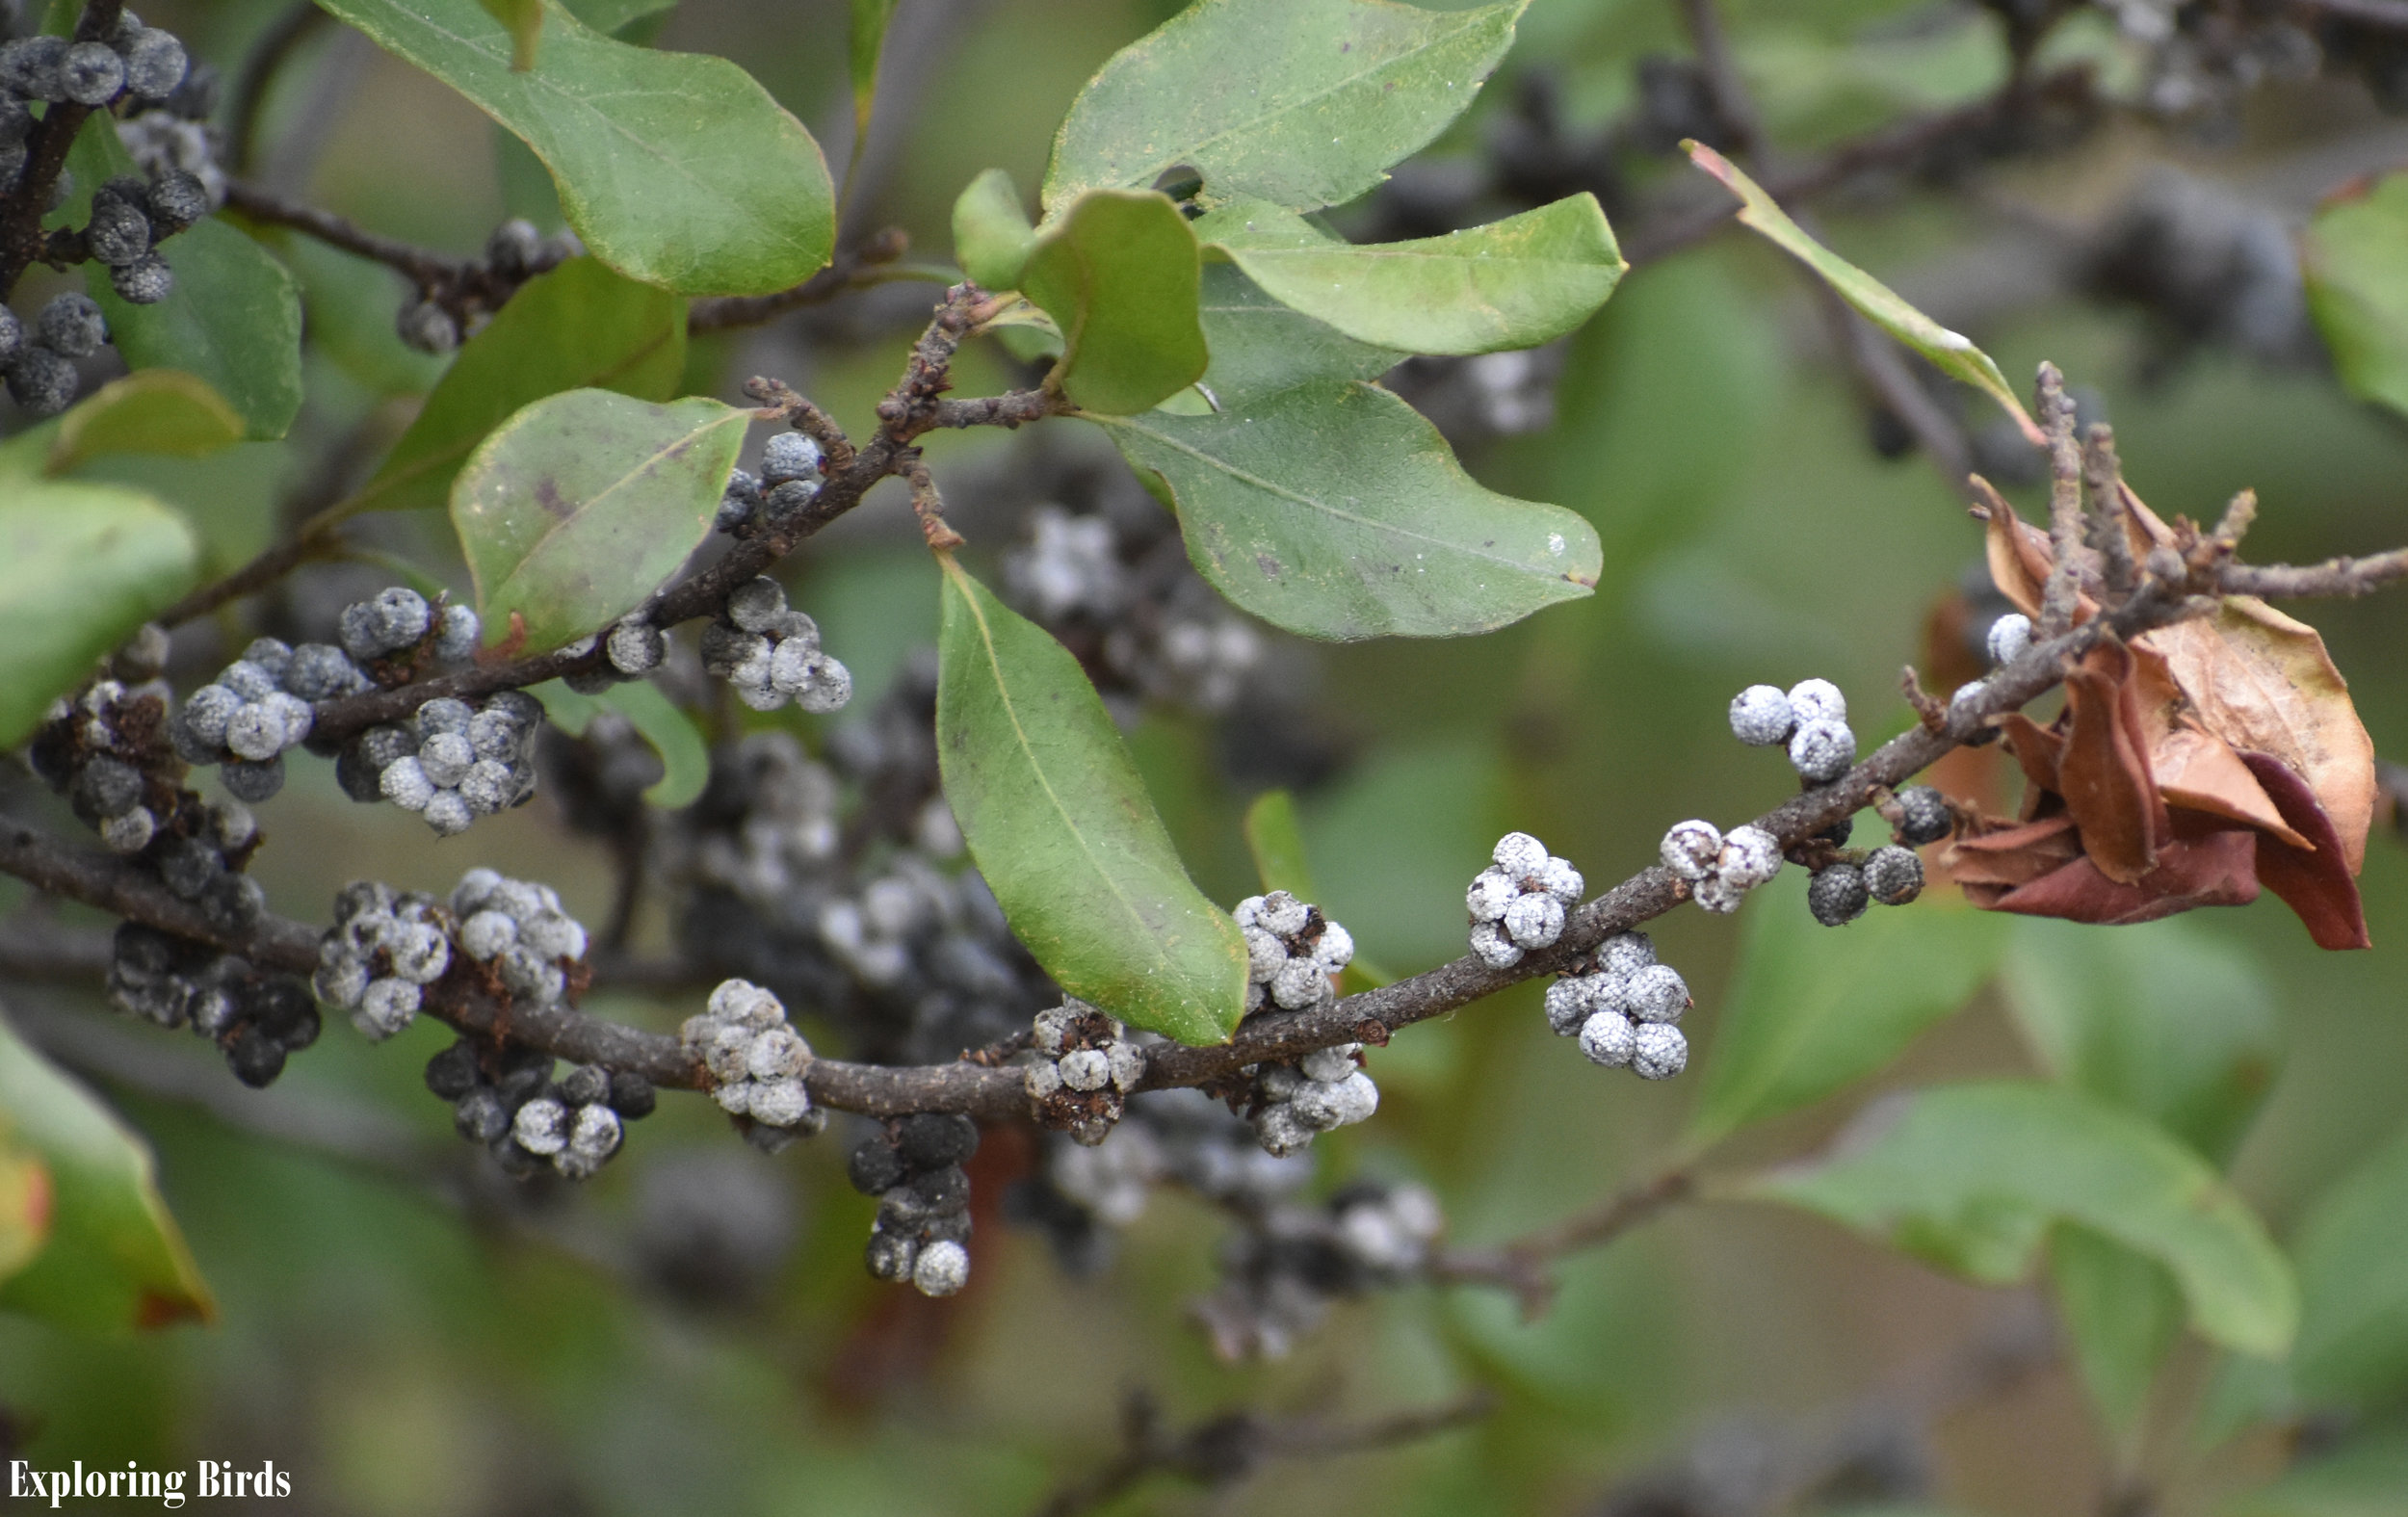 Northern Bayberry is a shrub that attracts birds